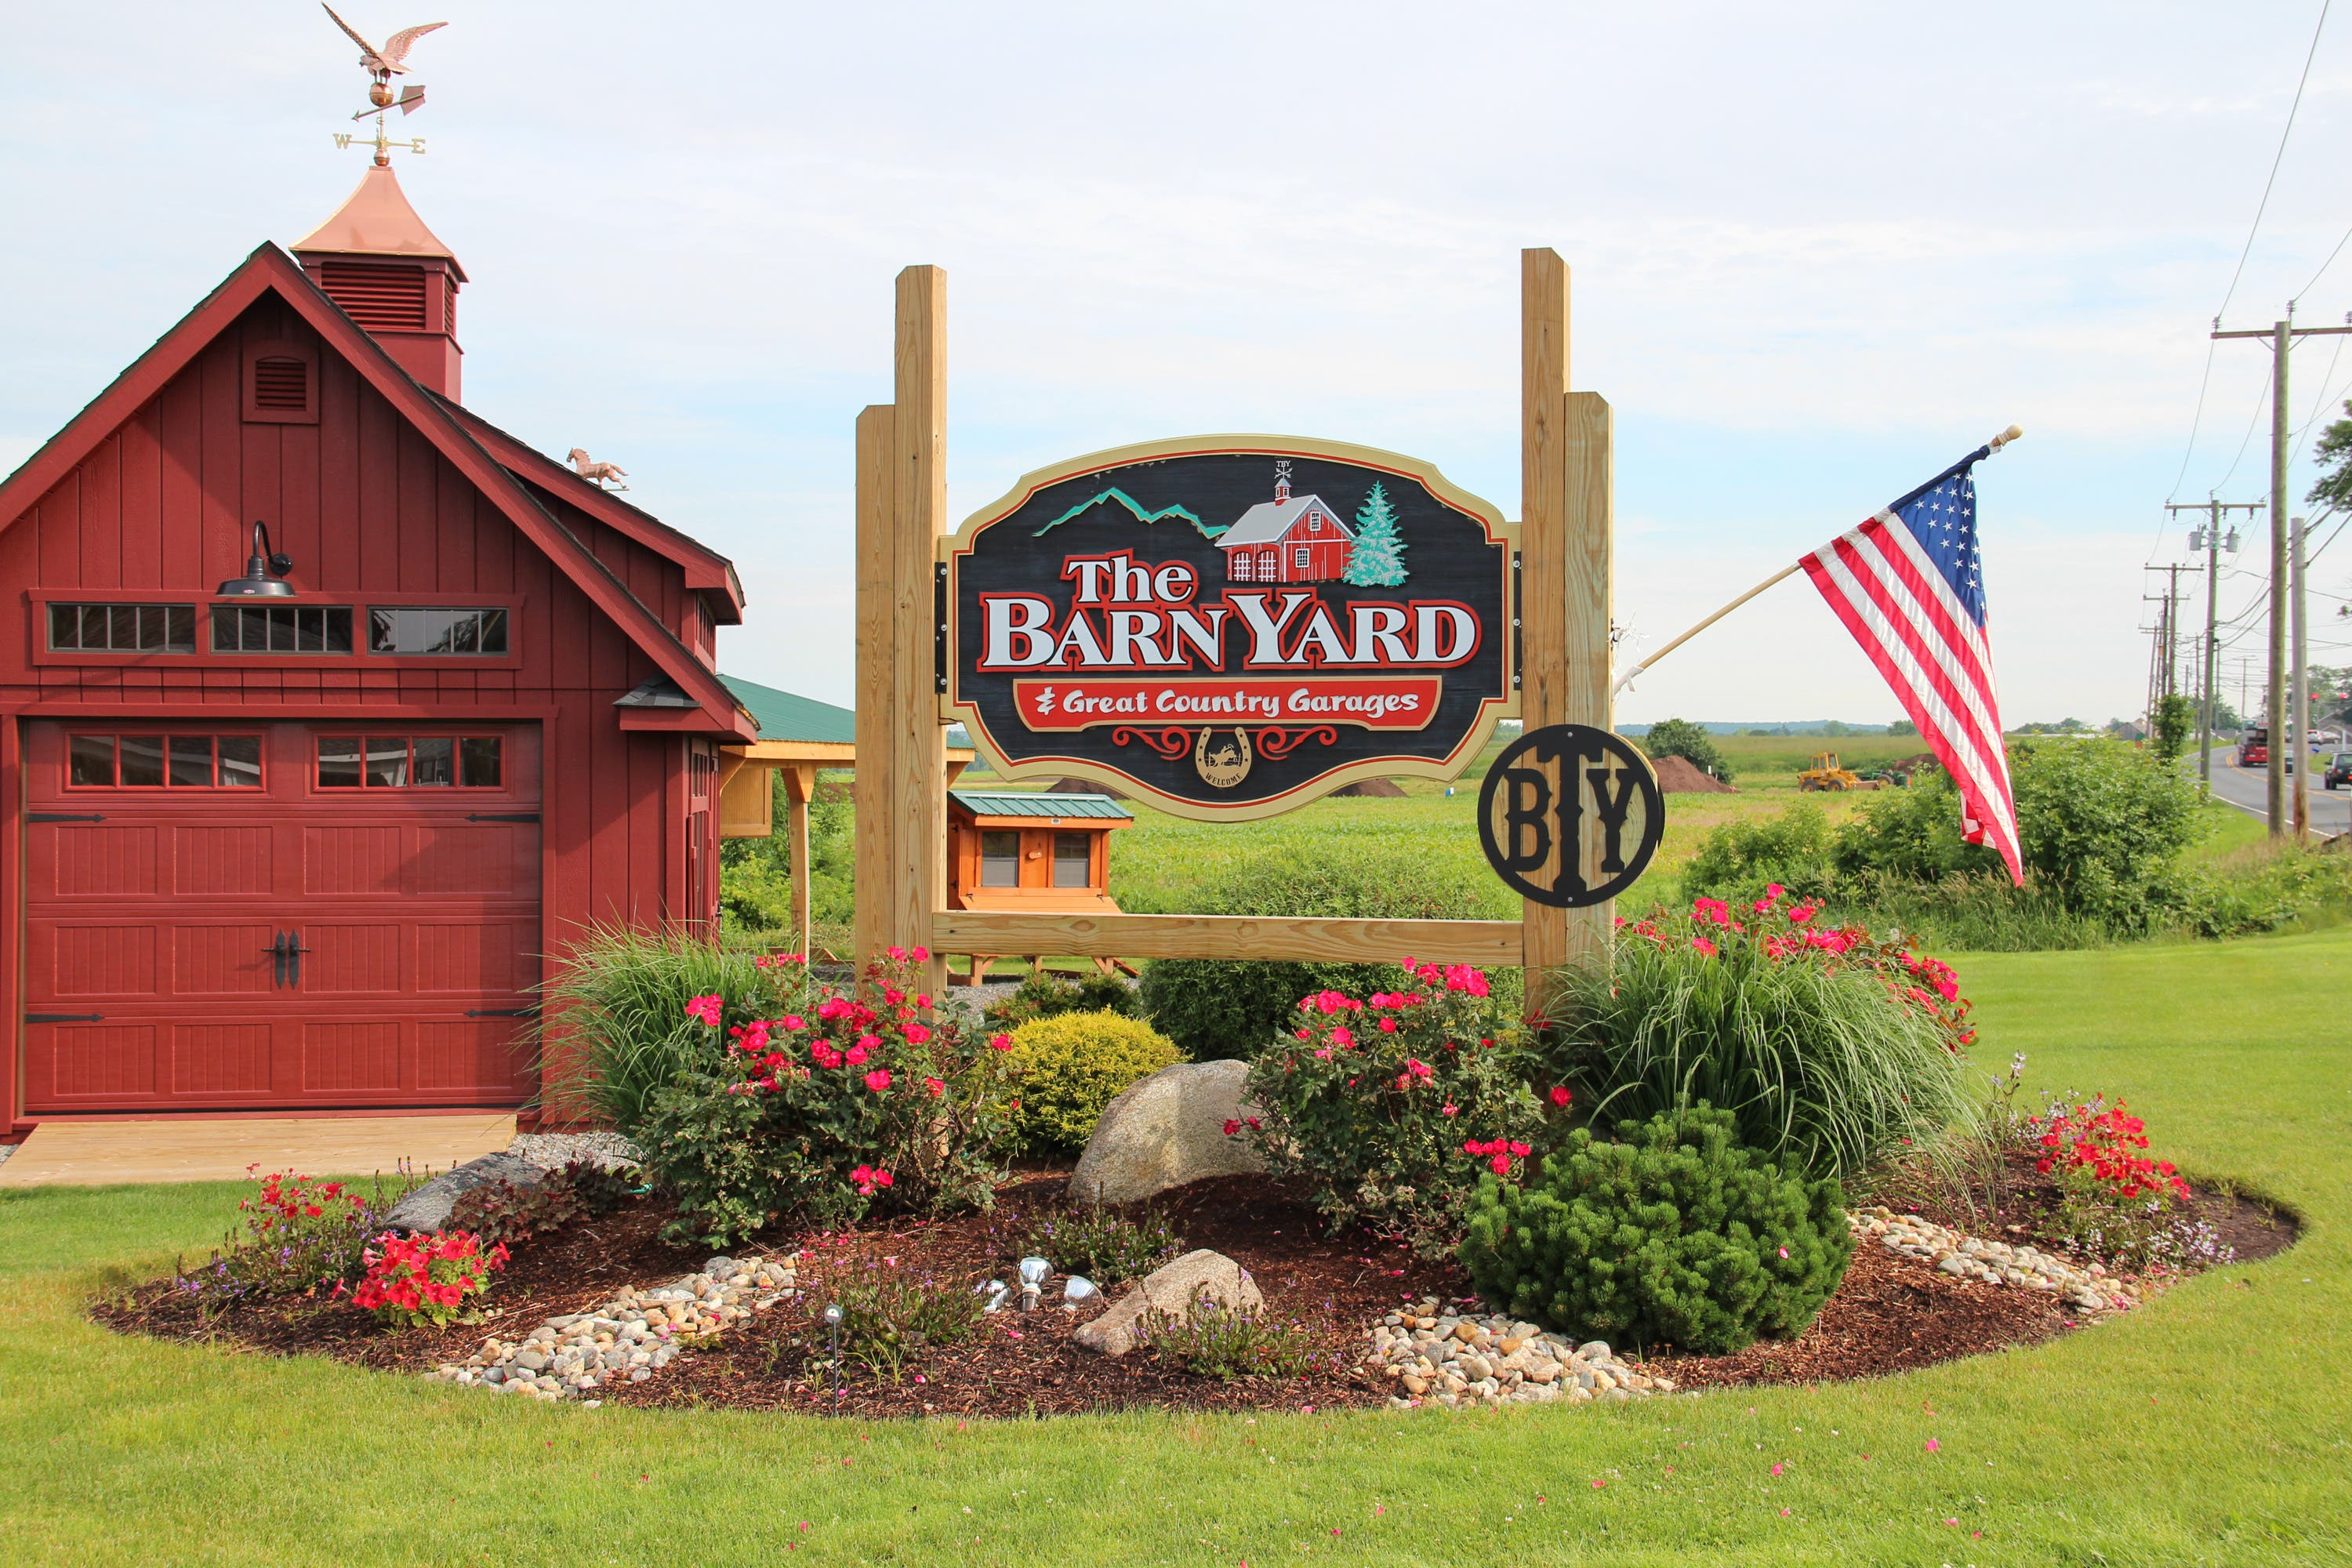 Anniversary Celebration at The Barn Yard & Great Country Garages